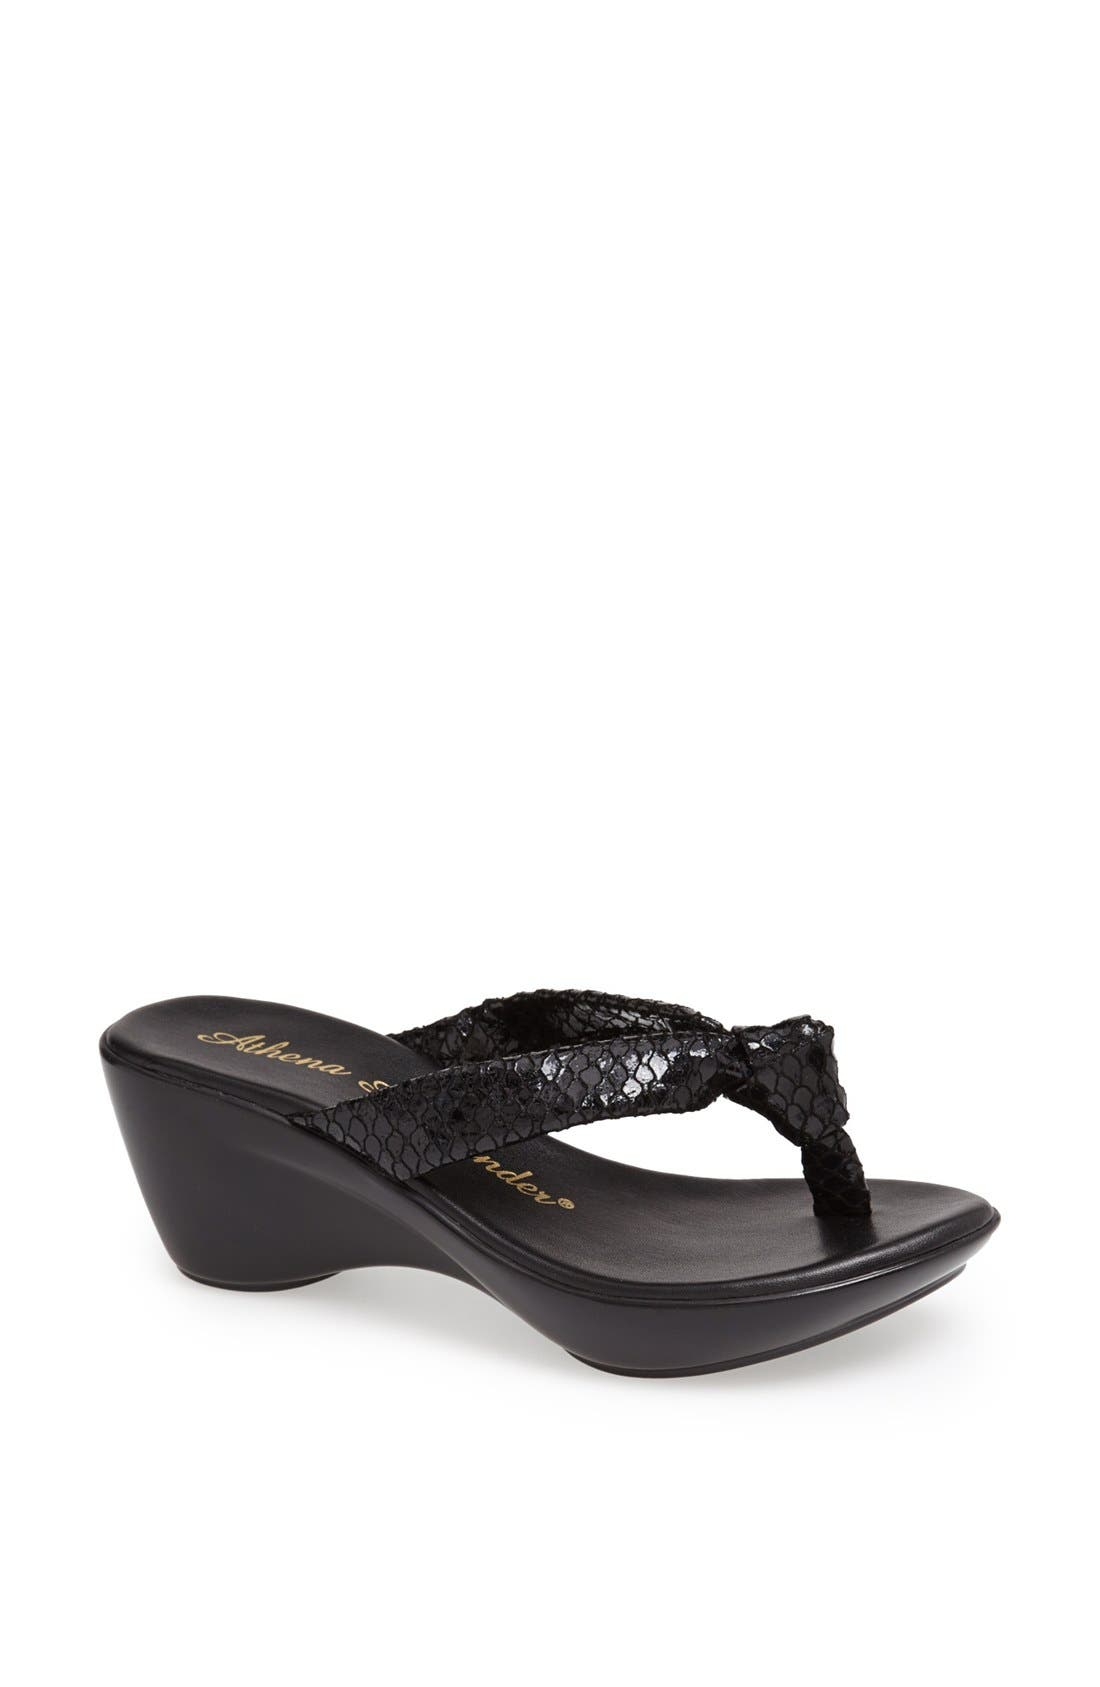 Alternate Image 1 Selected - Athena Alexander 'Ever' Wedge Sandal